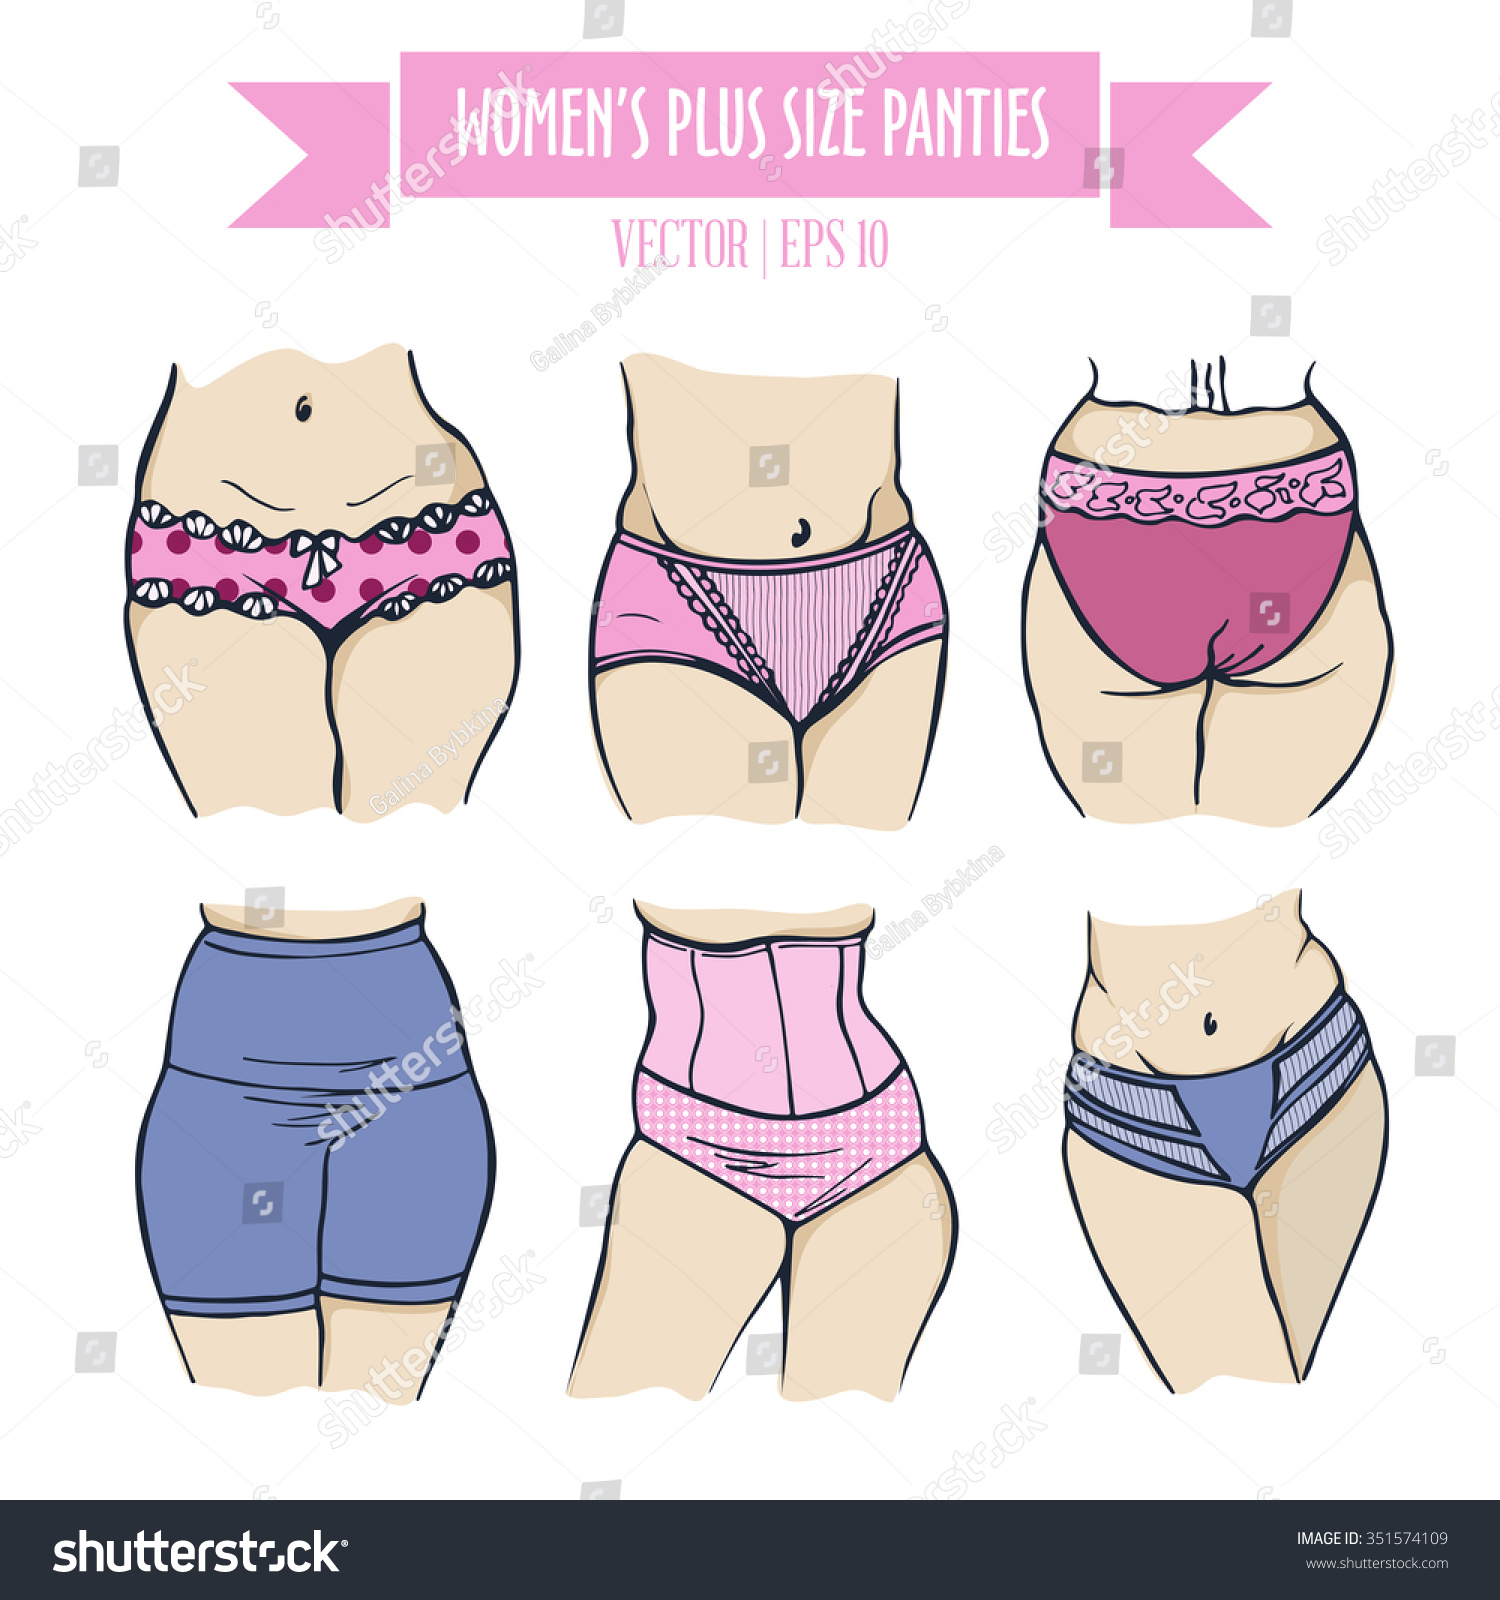 Different Types Panties Women Plus Size Stock Vector 351574109 ...